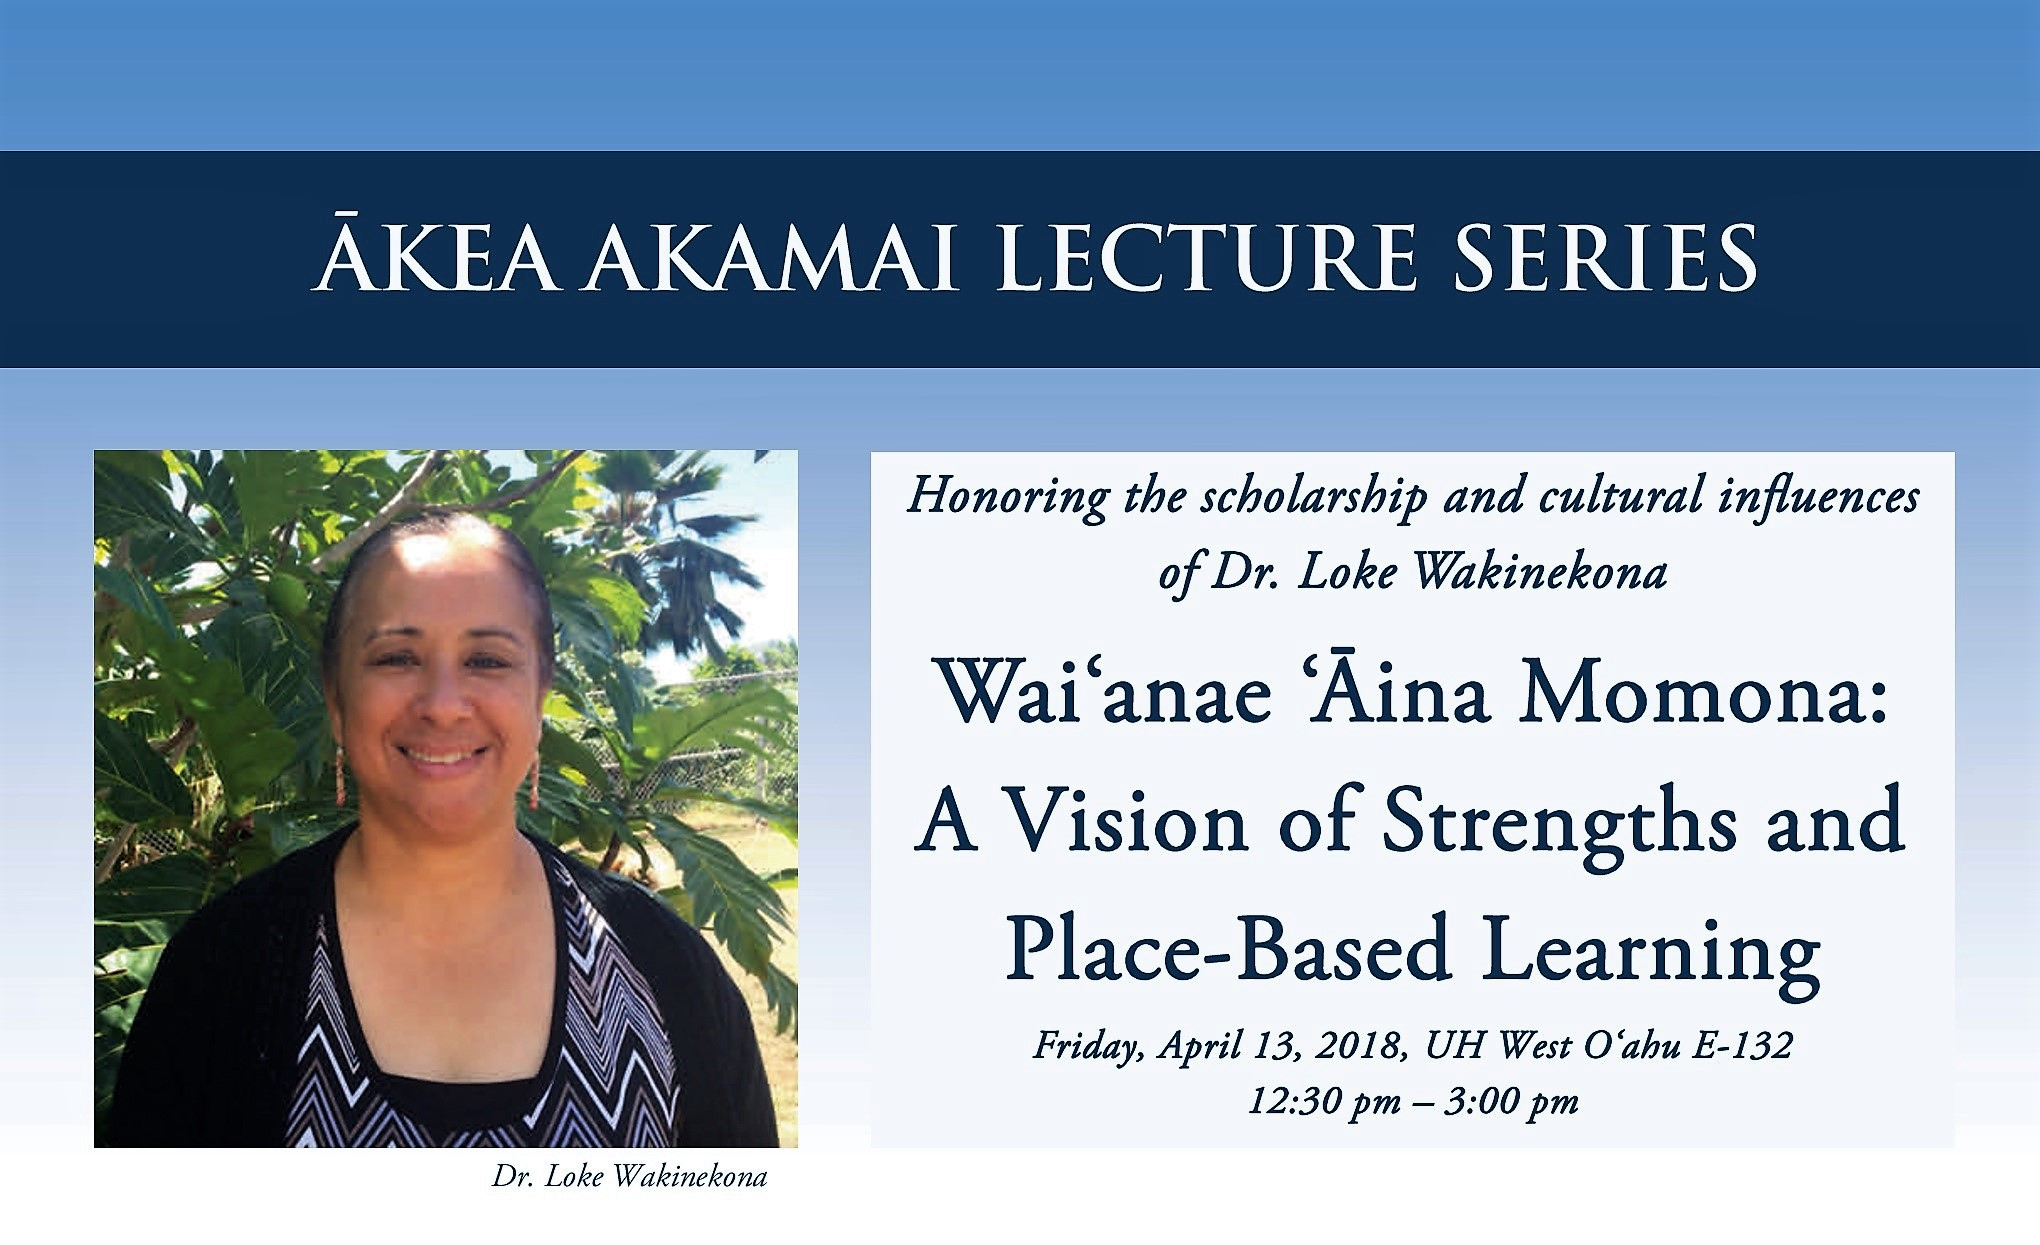 Flyer for Akea Akamai lecture with Dr. Loke Wakinekona